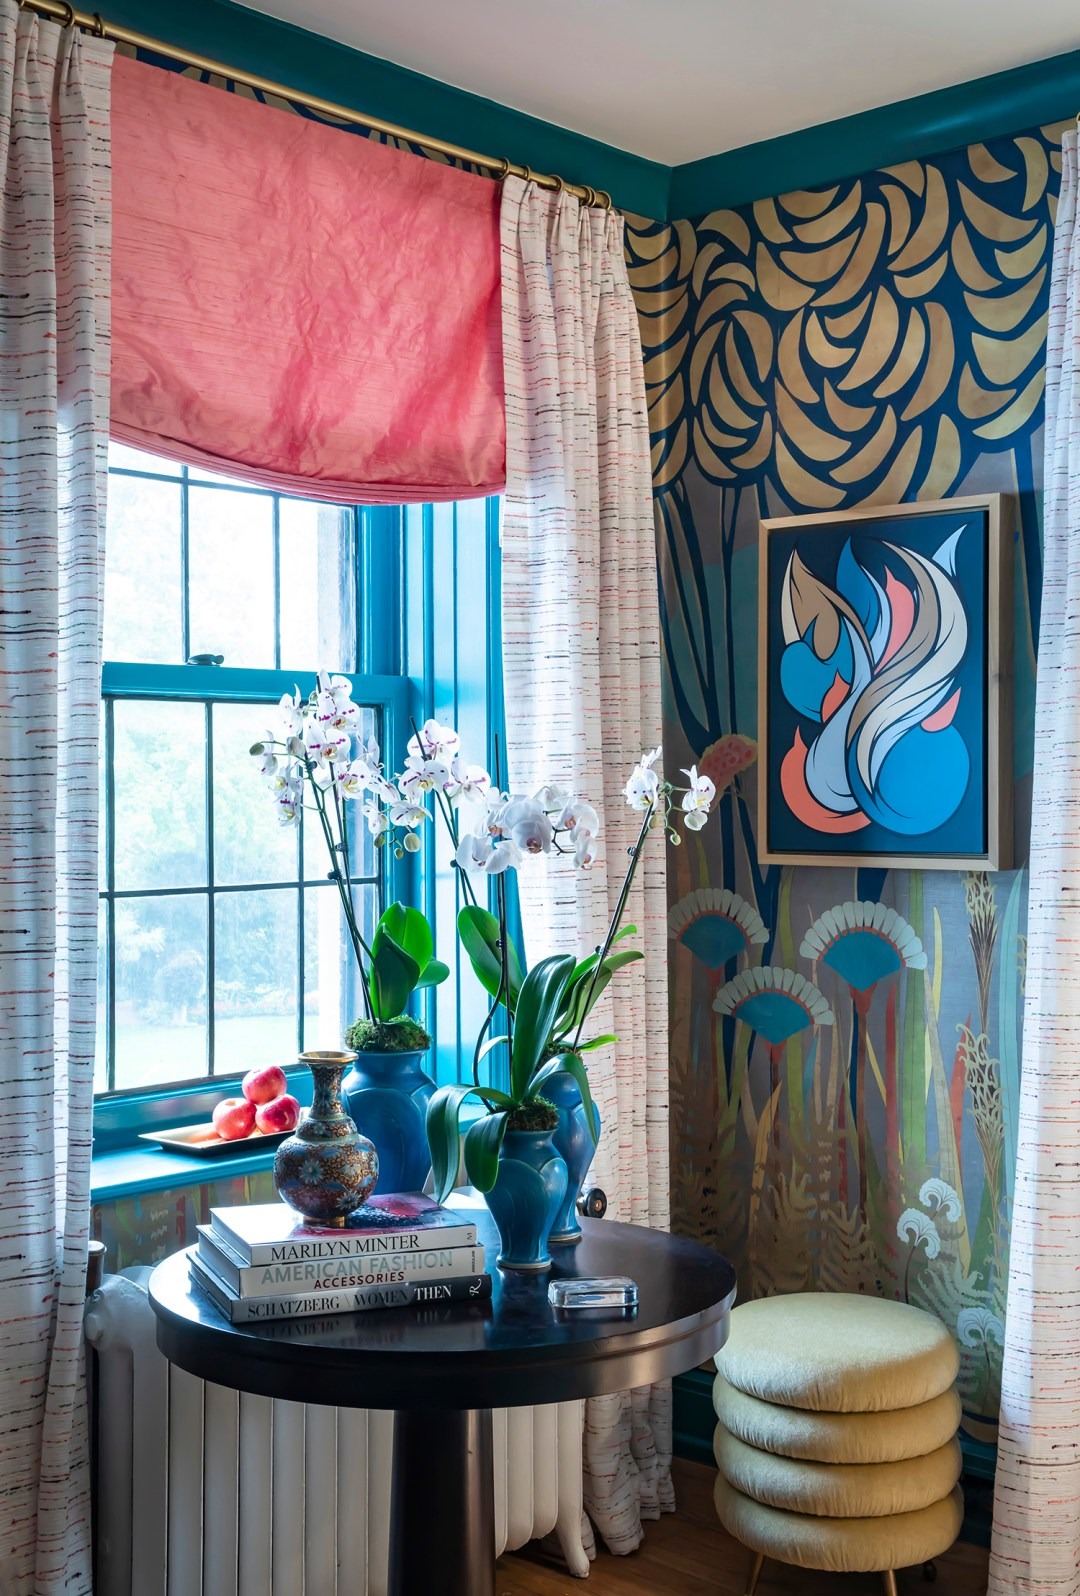 Courtney-McLeod-RMLID-JL-Showhouse_27 Tips for Adding Color and Pattern to a Room from a Louisiana Native